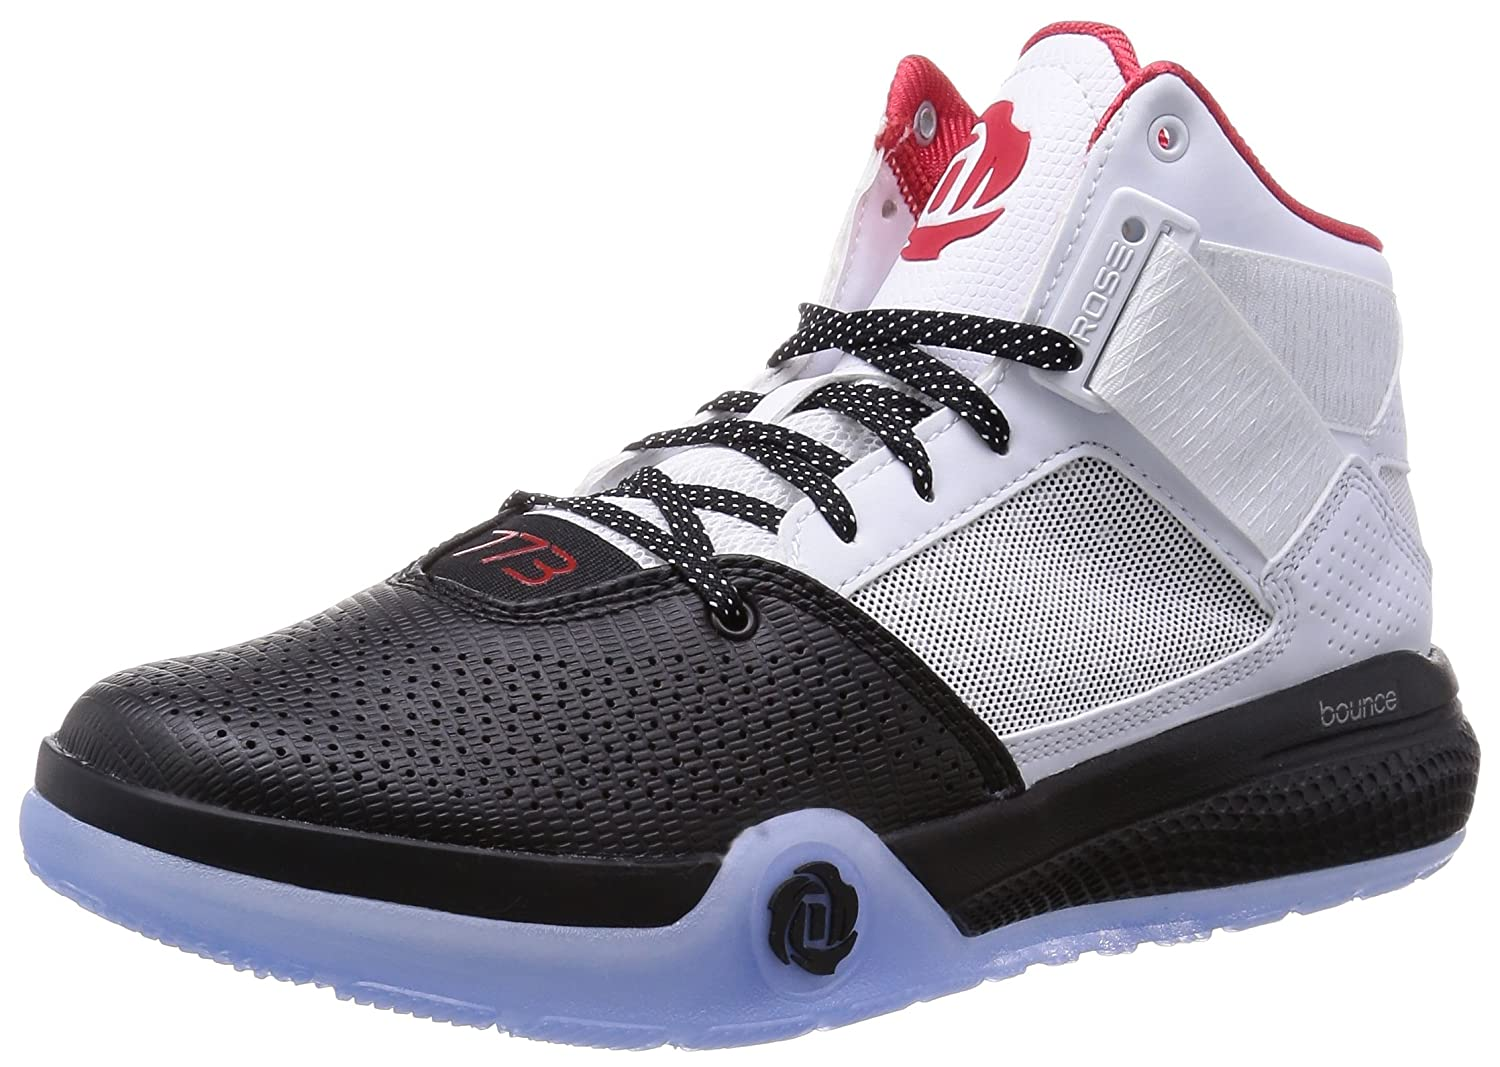 7538f75e805 ... ireland amazon adidas d rose 773 iv d69433 color white black red size  9.0 fashion sneakers ...